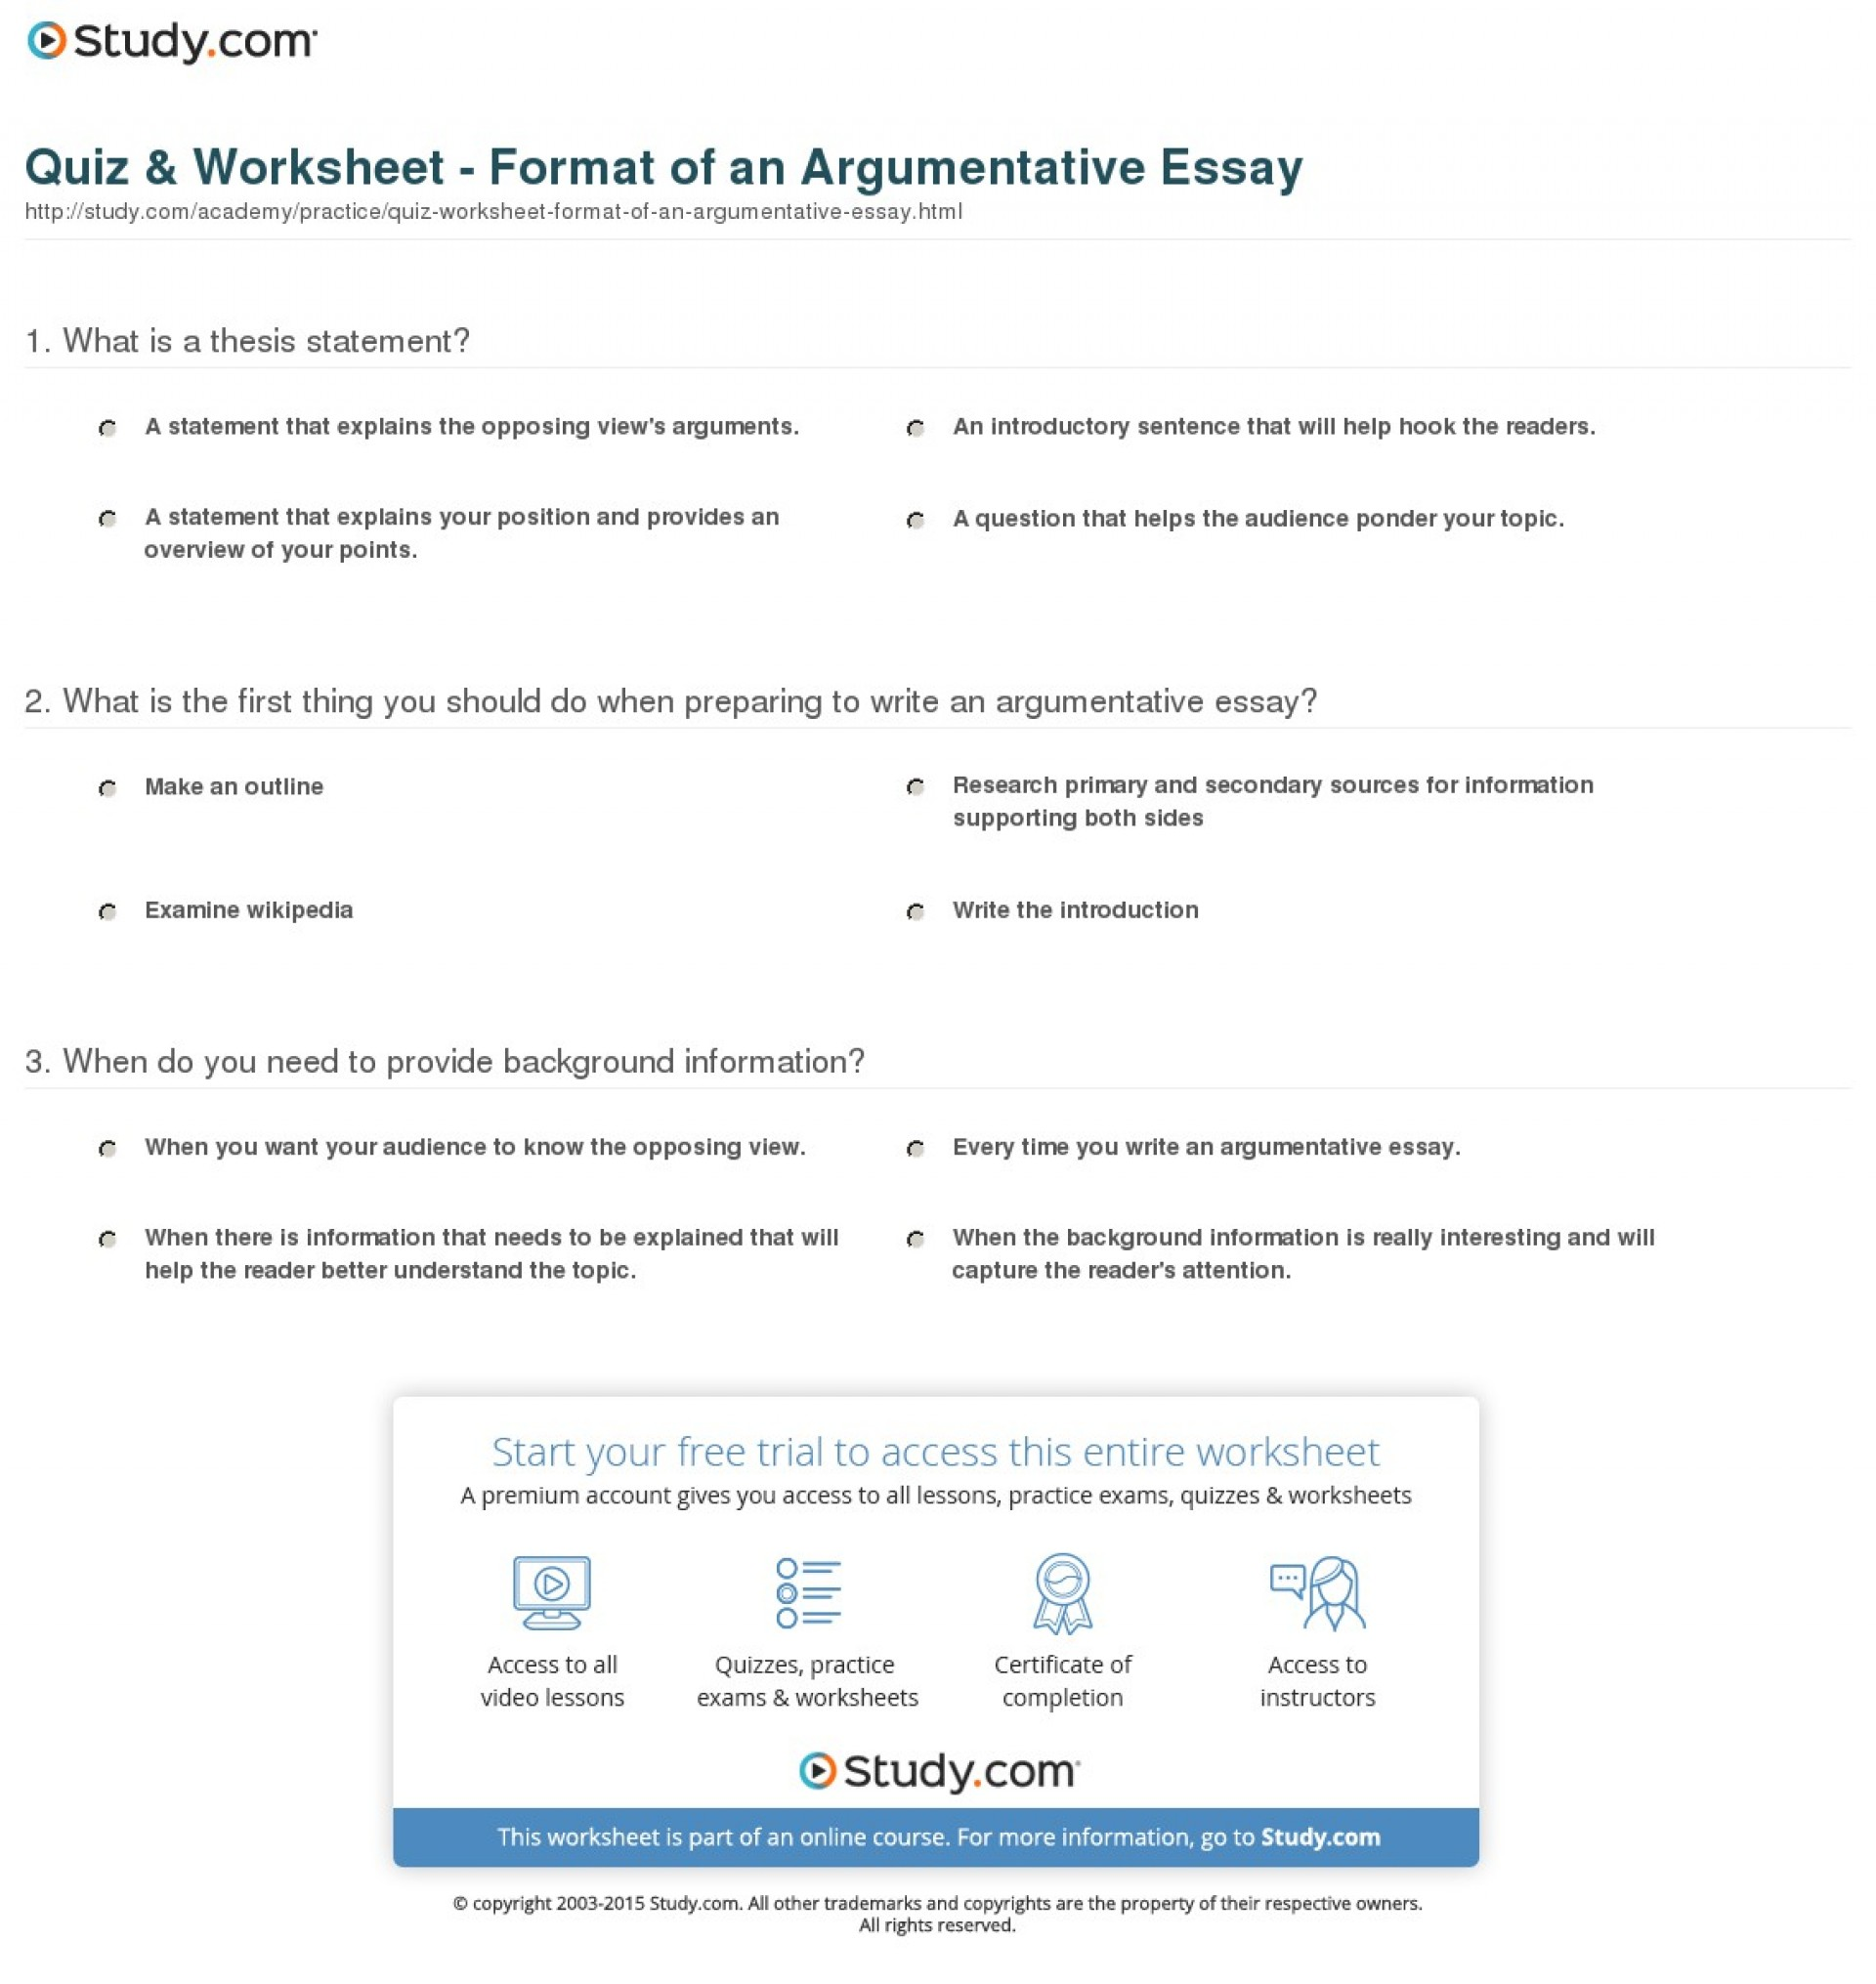 015 Argumentative Essay Format Quiz Worksheet Of An Best Outline Template College Examples Pdf 1920